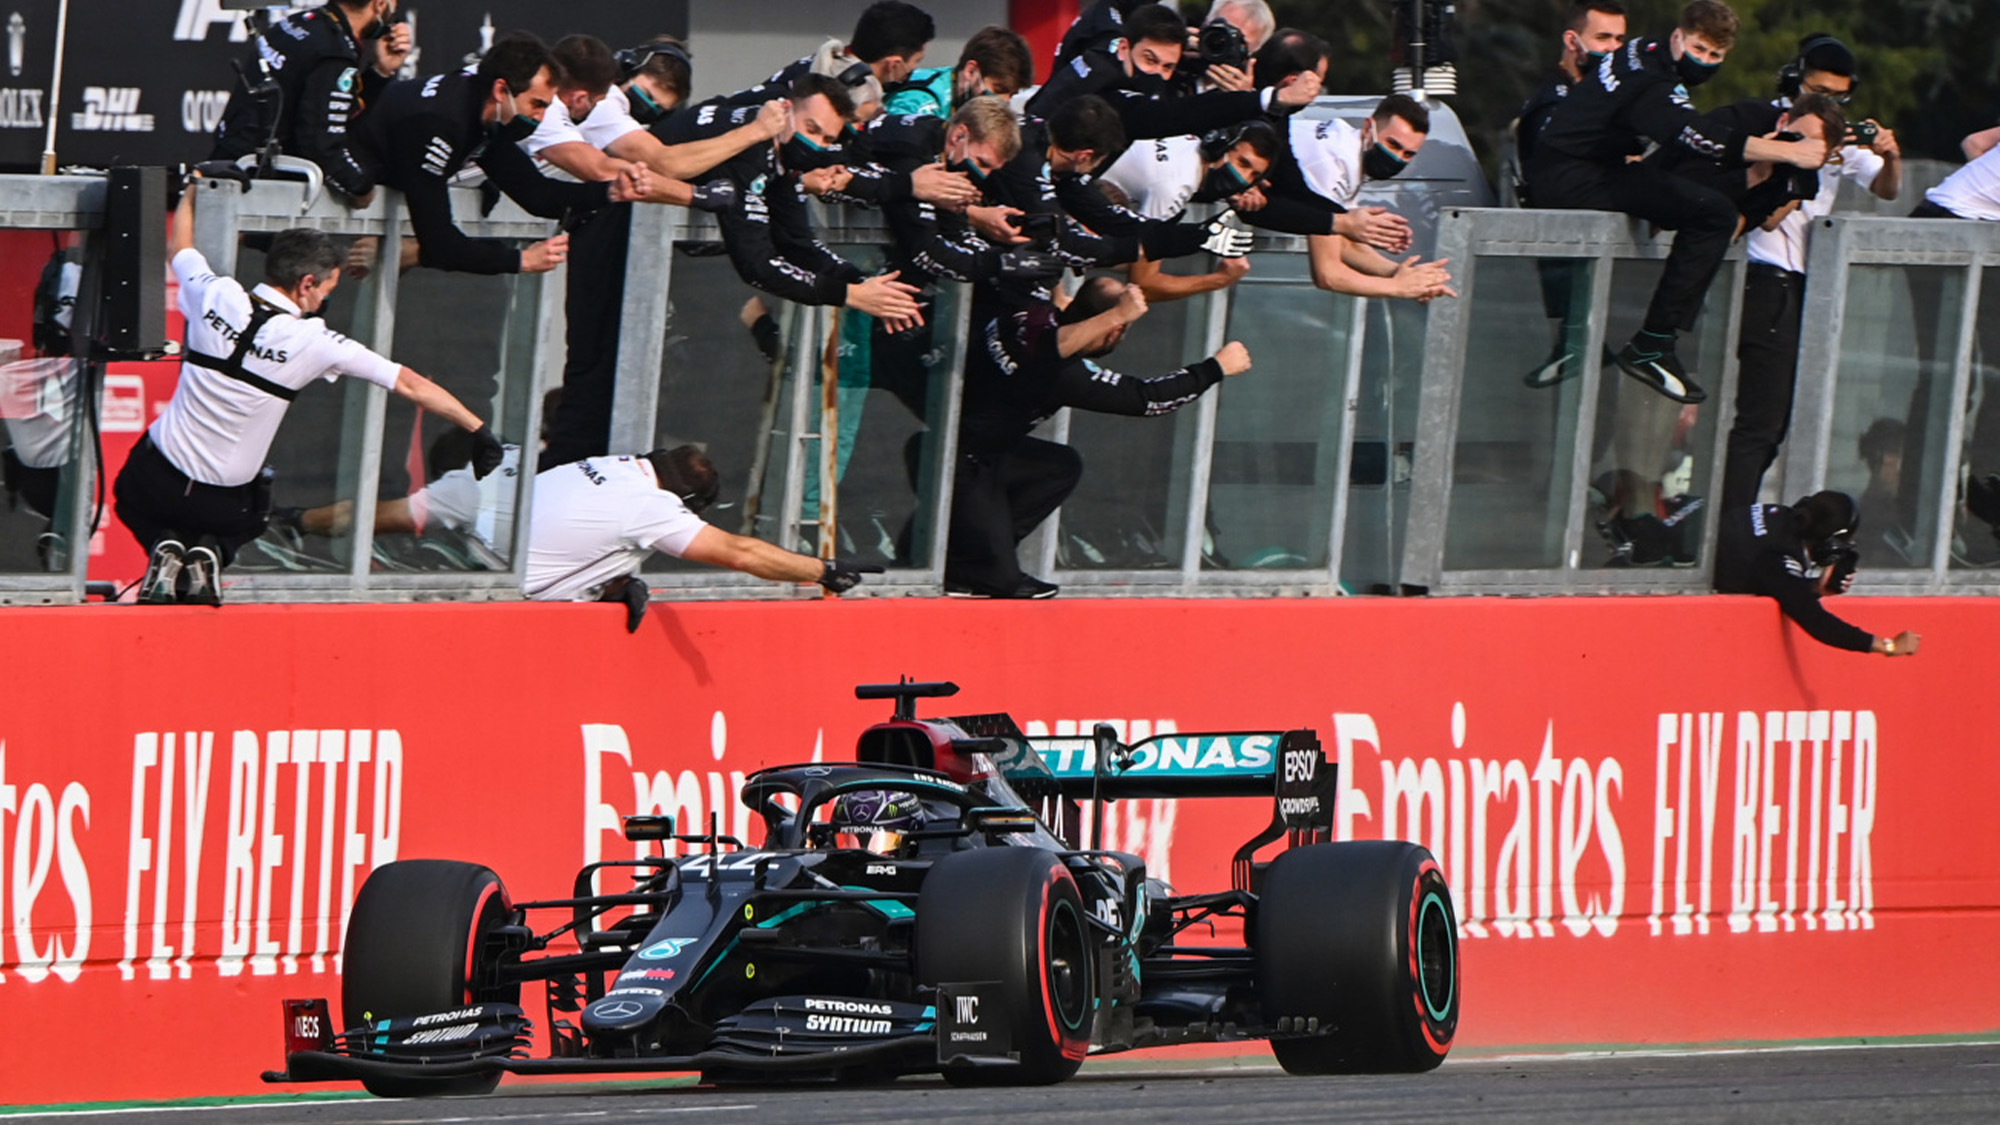 Lewis Hamilton crosses the line at Imola to win the 2020 F1 Emilia Romagna Grand Prix and clinmch the constructors championship for Mercedes